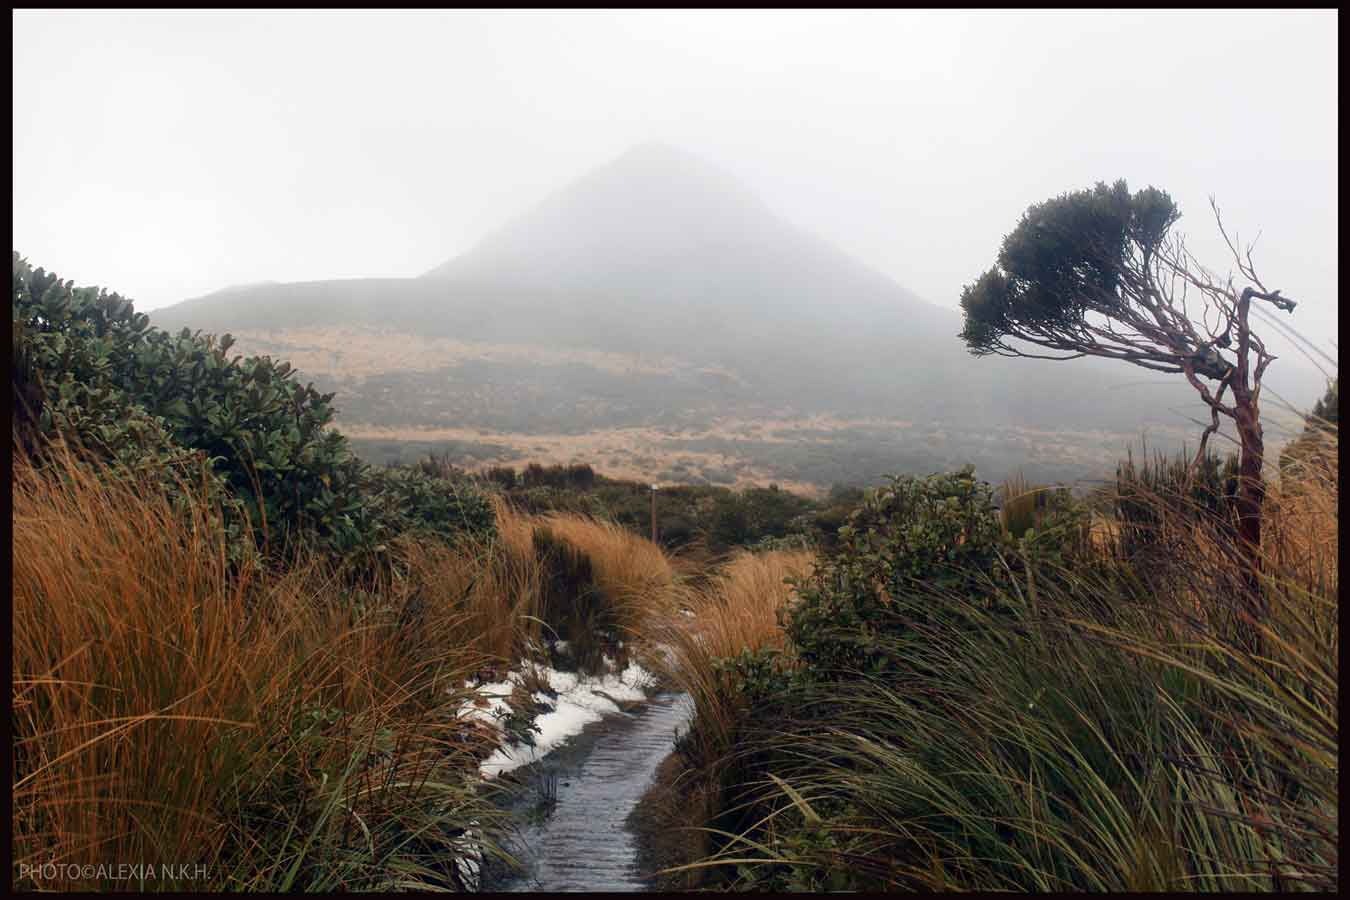 Winter July on Taranaki mounatin